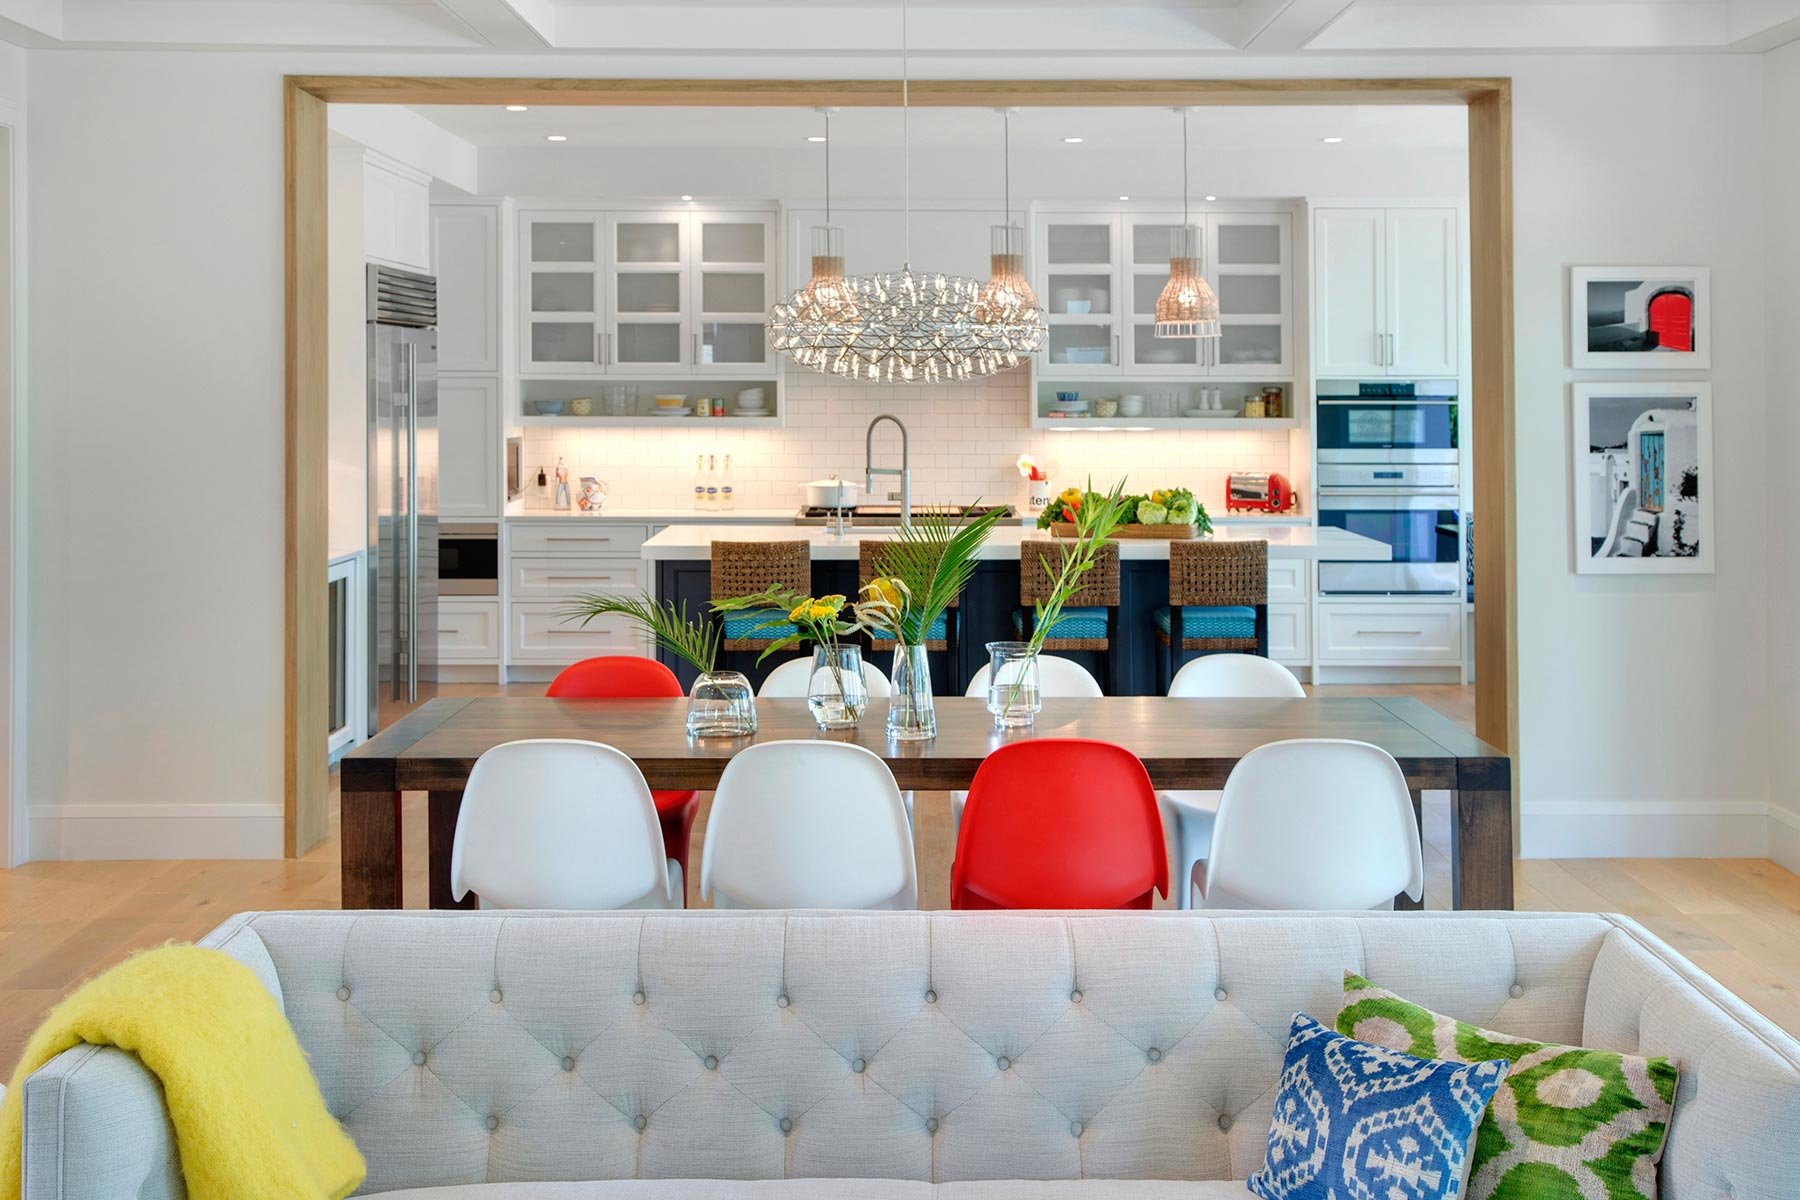 lucy interior design simply nordic - Interior Designers In Minneapolis